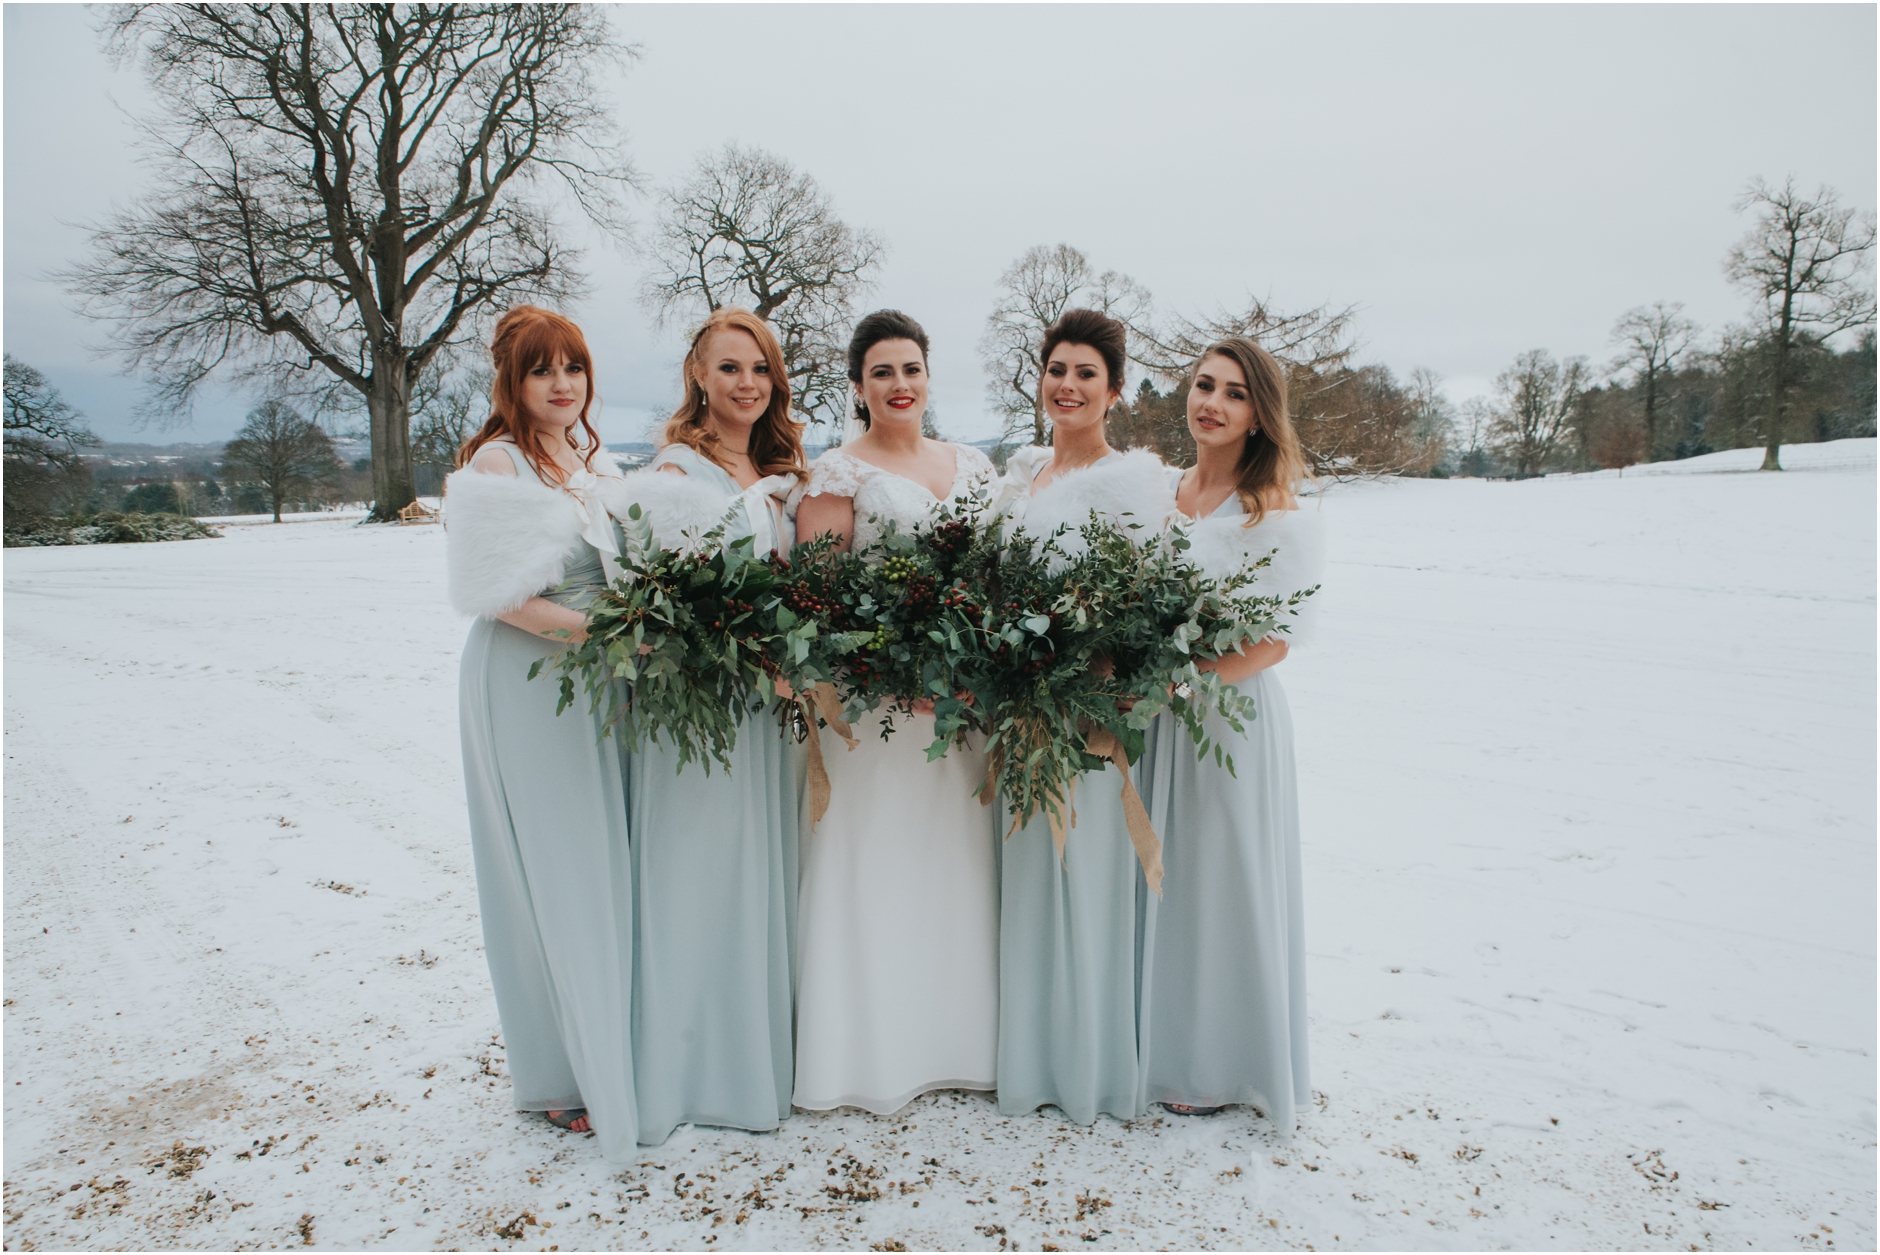 dundas castle wedding winter snow bridal party edinburgh sou